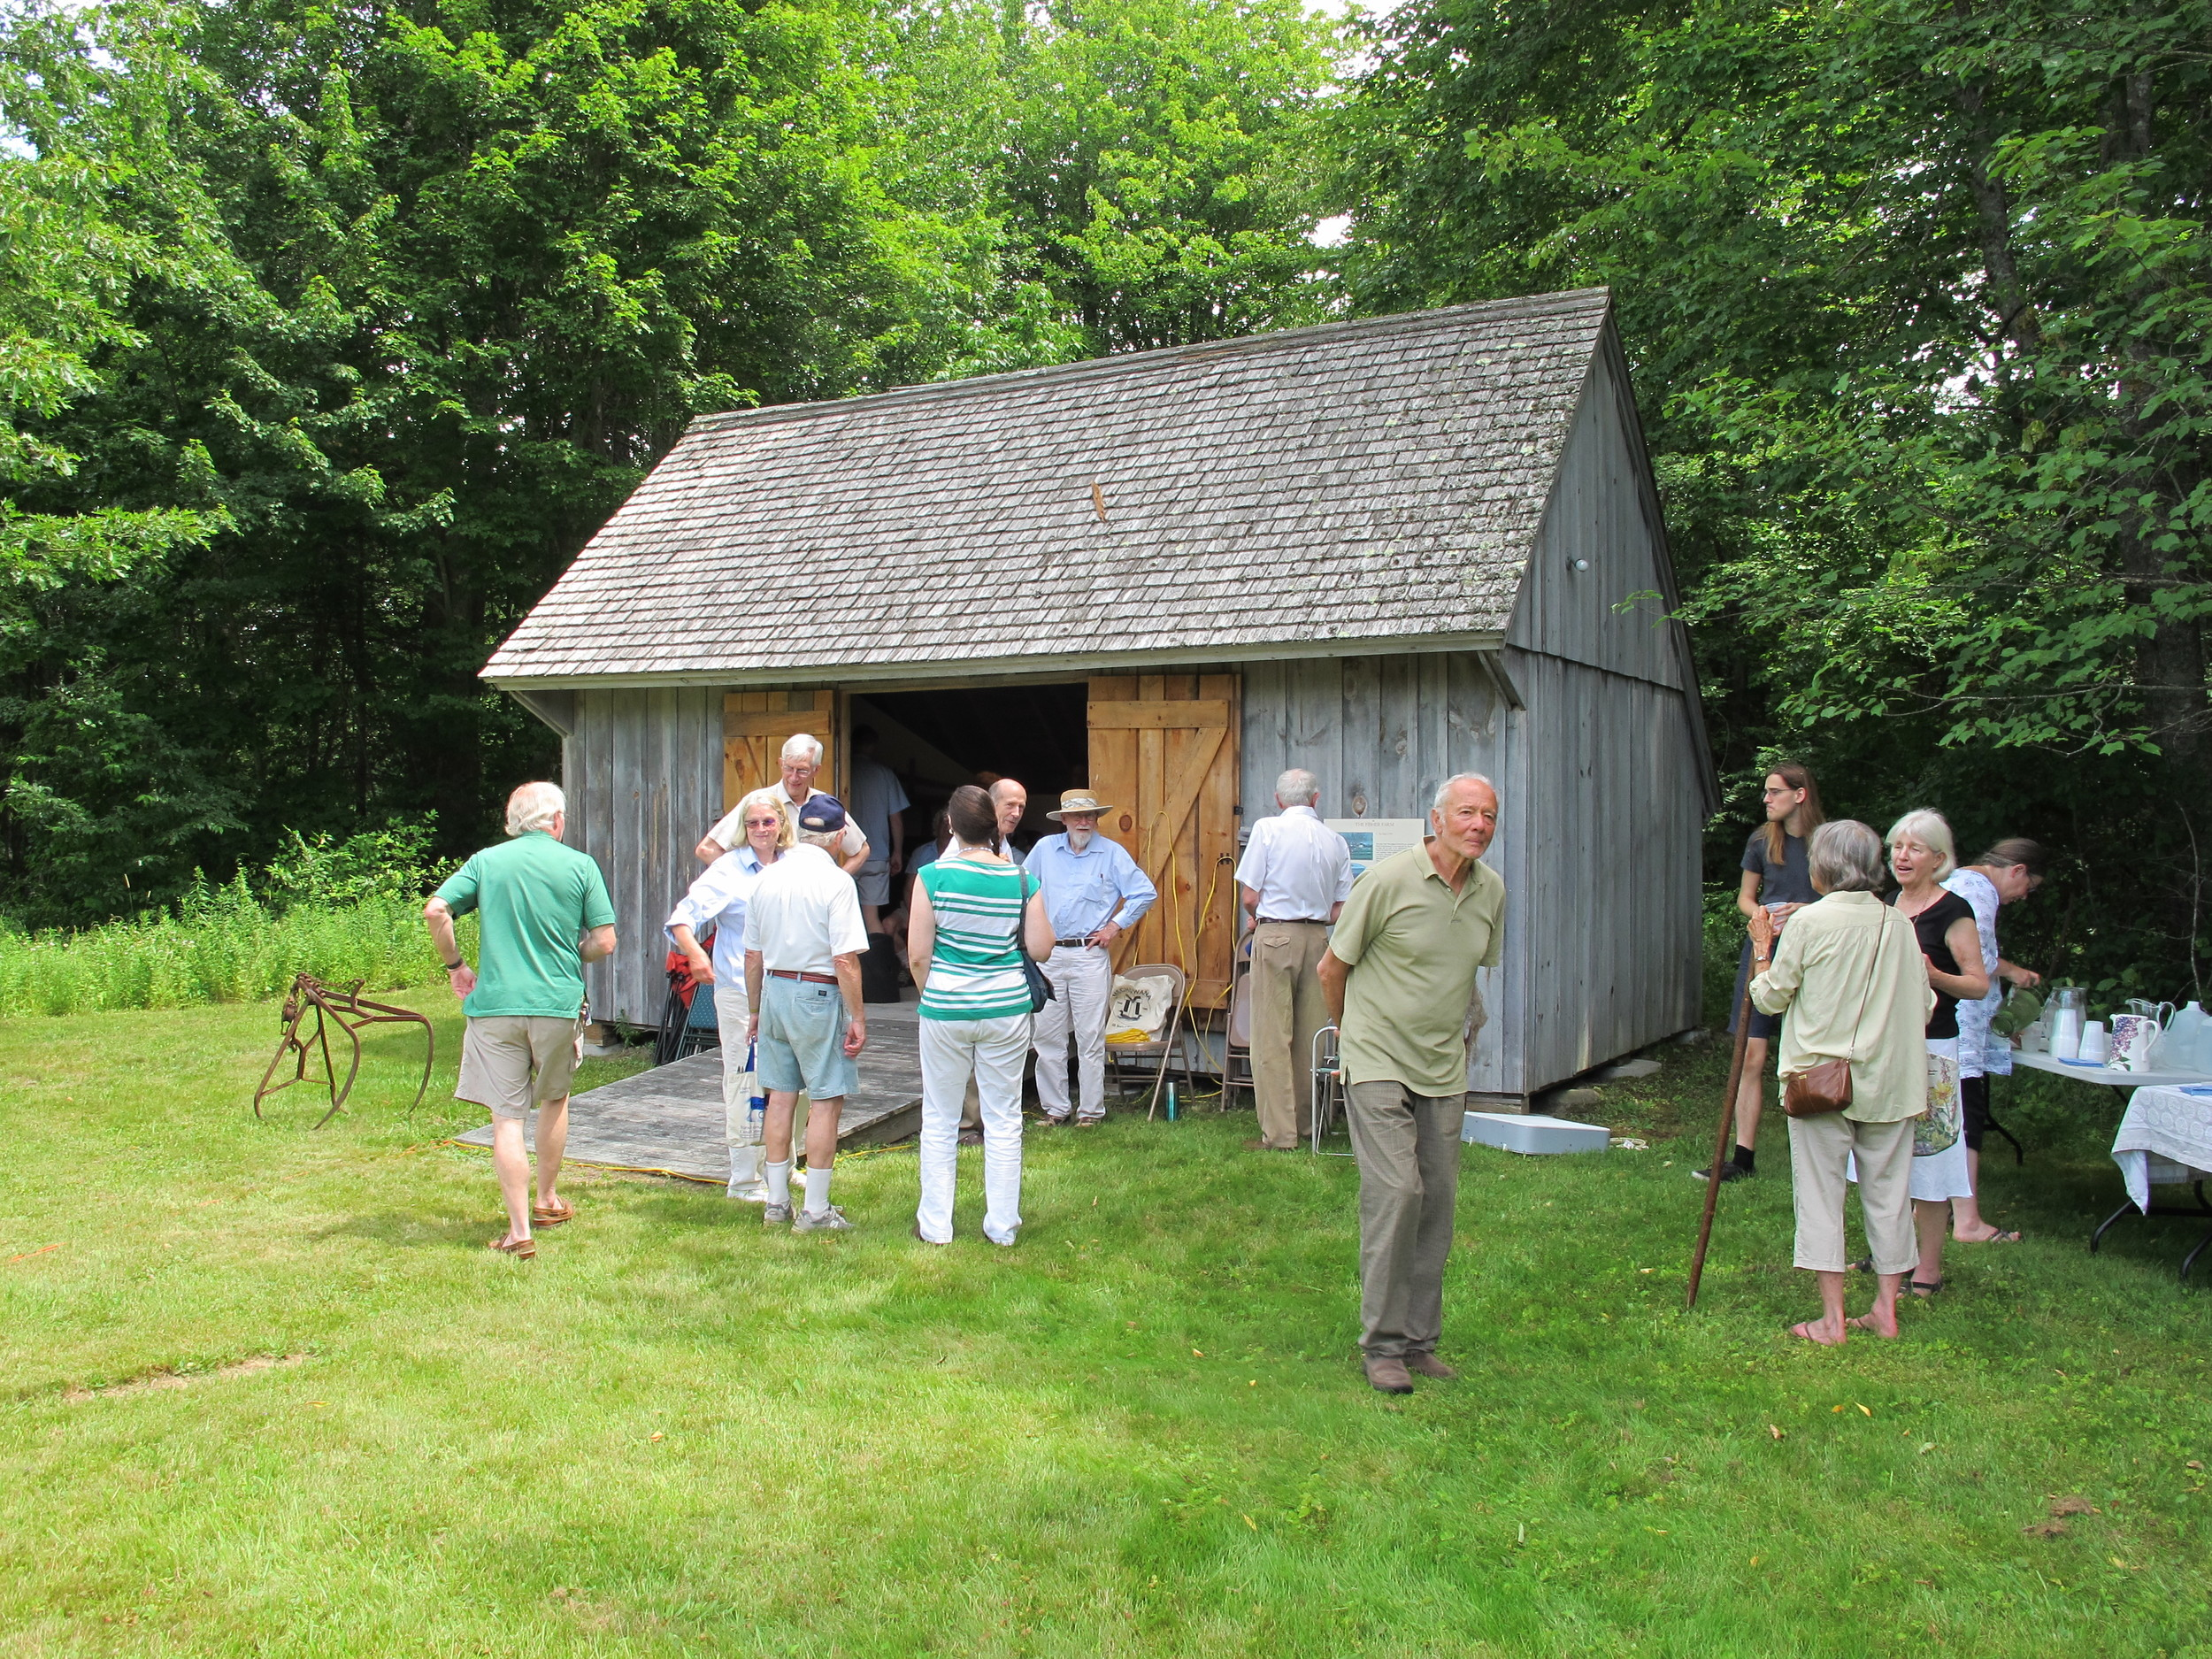 The event took place in and around a small barn donated by the Slaven family.